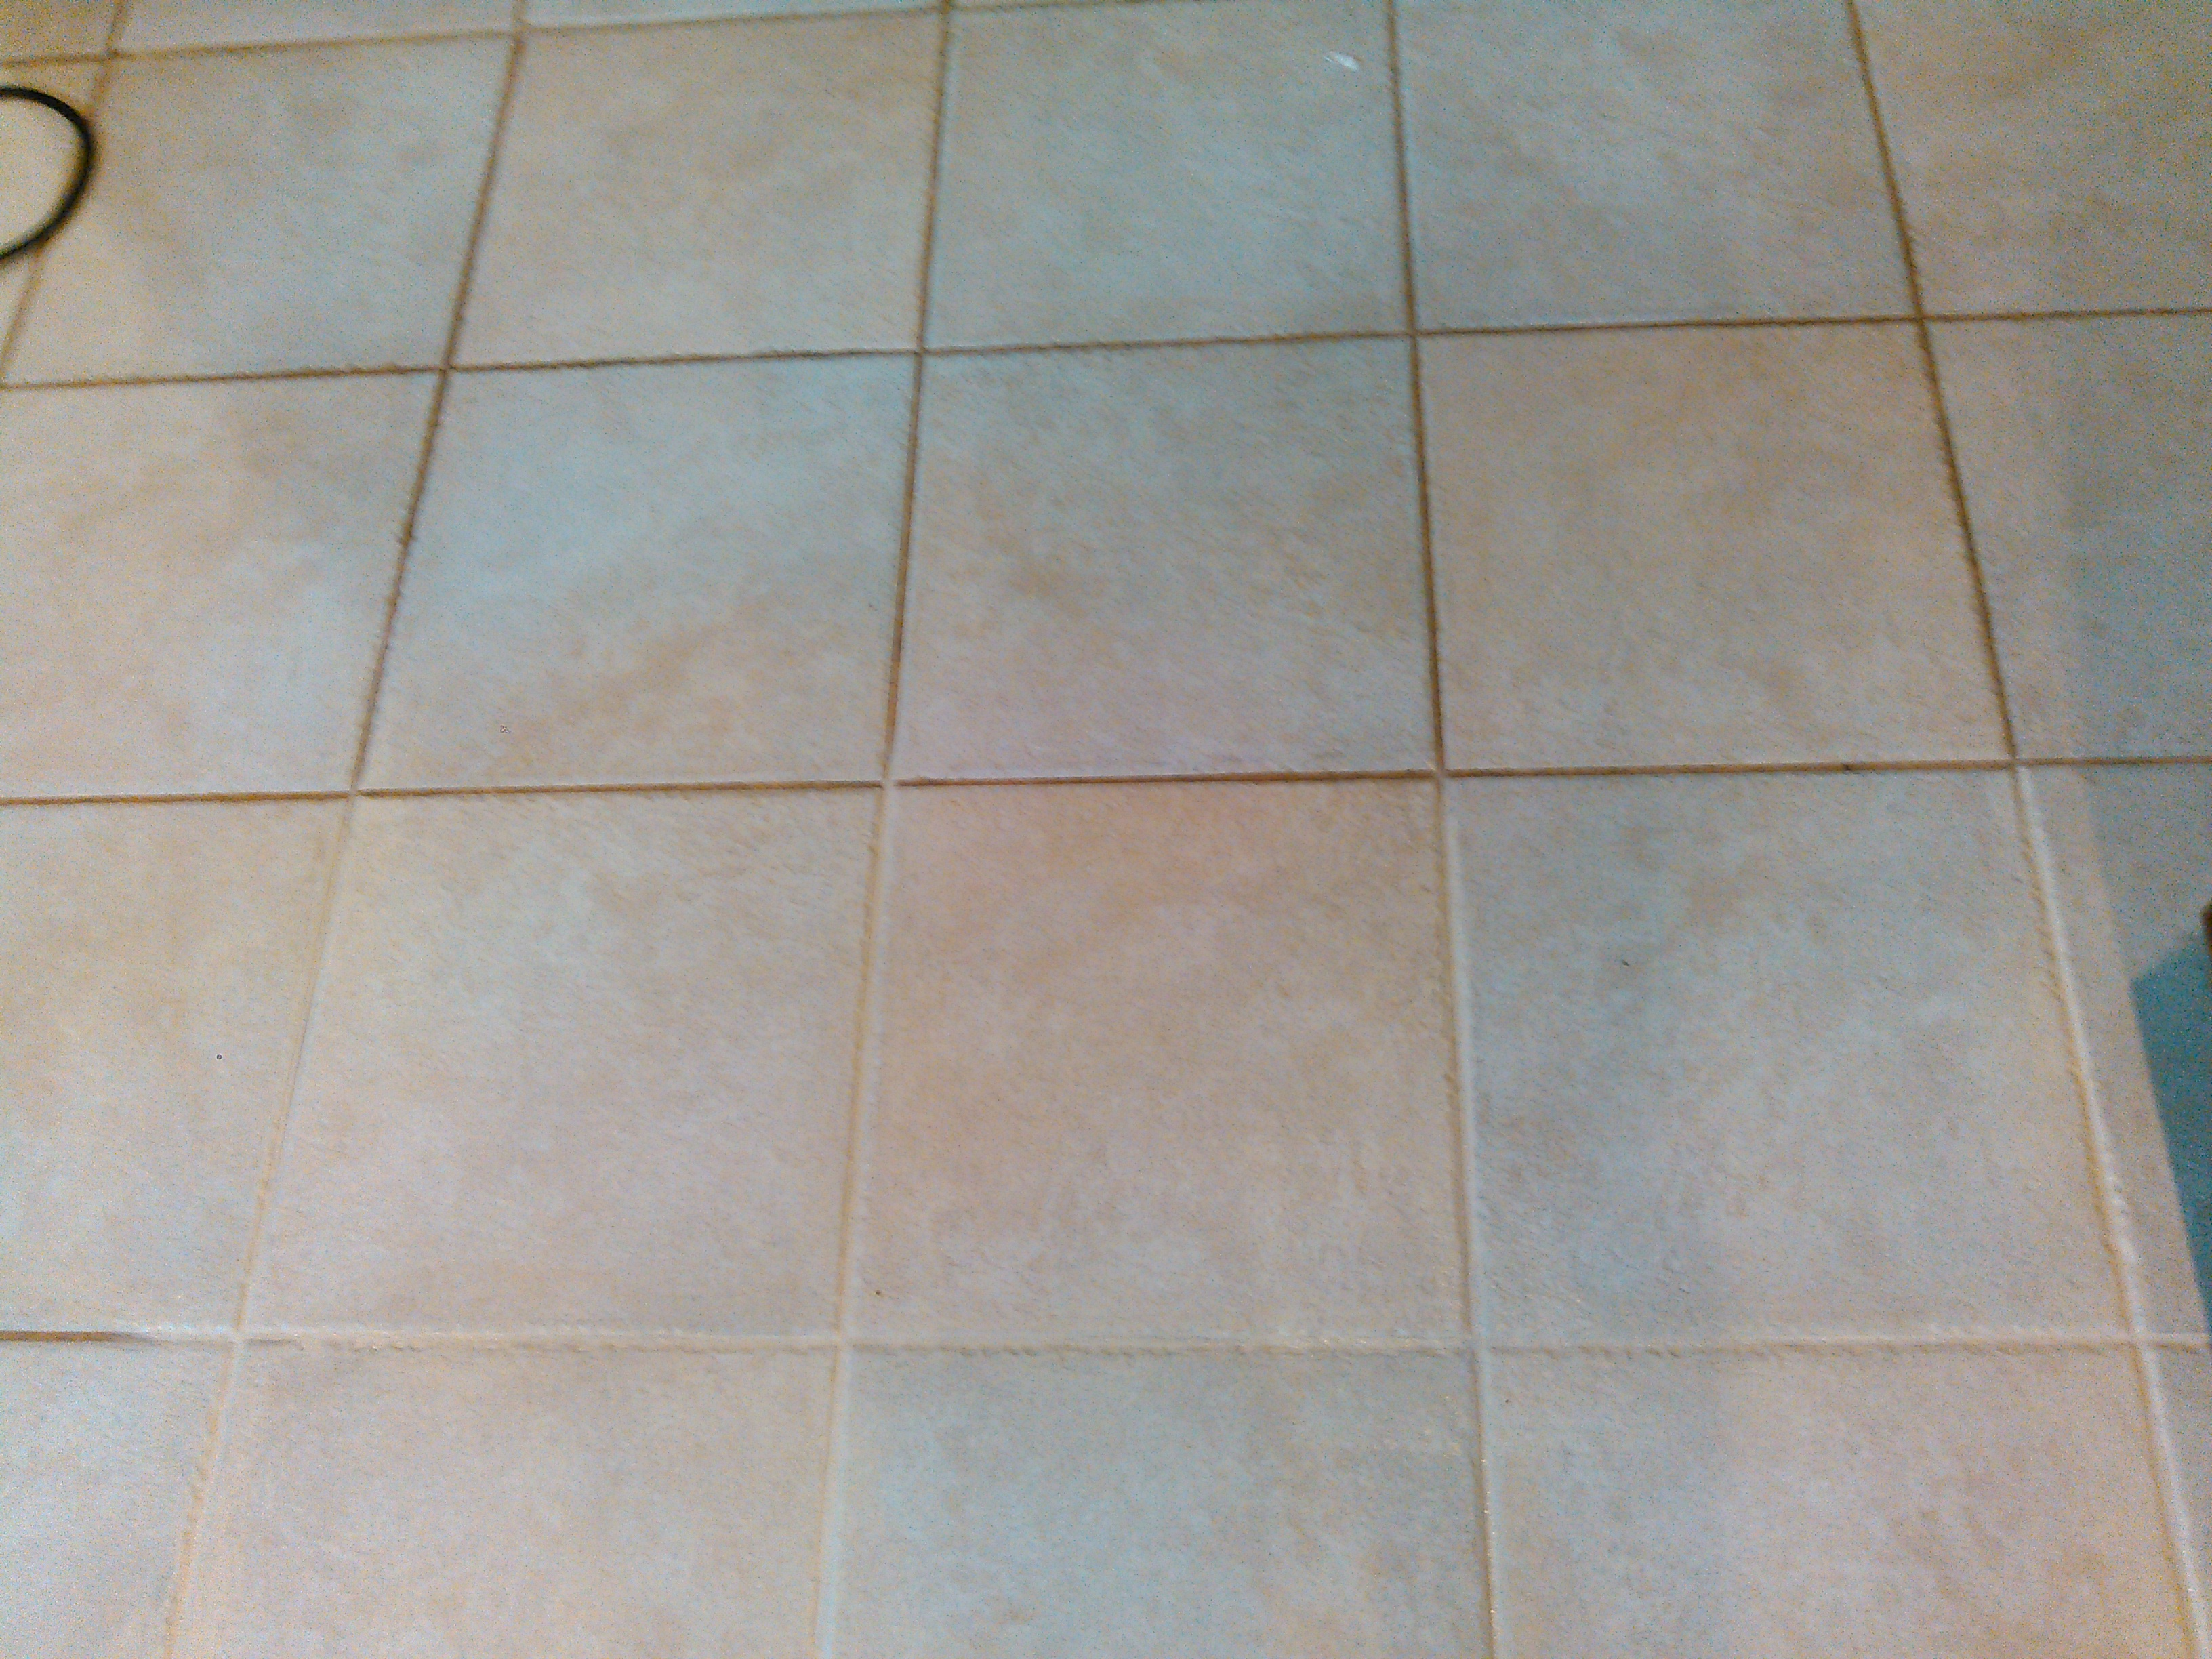 Tile grout cleaning clean zone tile before after tile and grout cleaning woodbridge nj 07095 dailygadgetfo Images